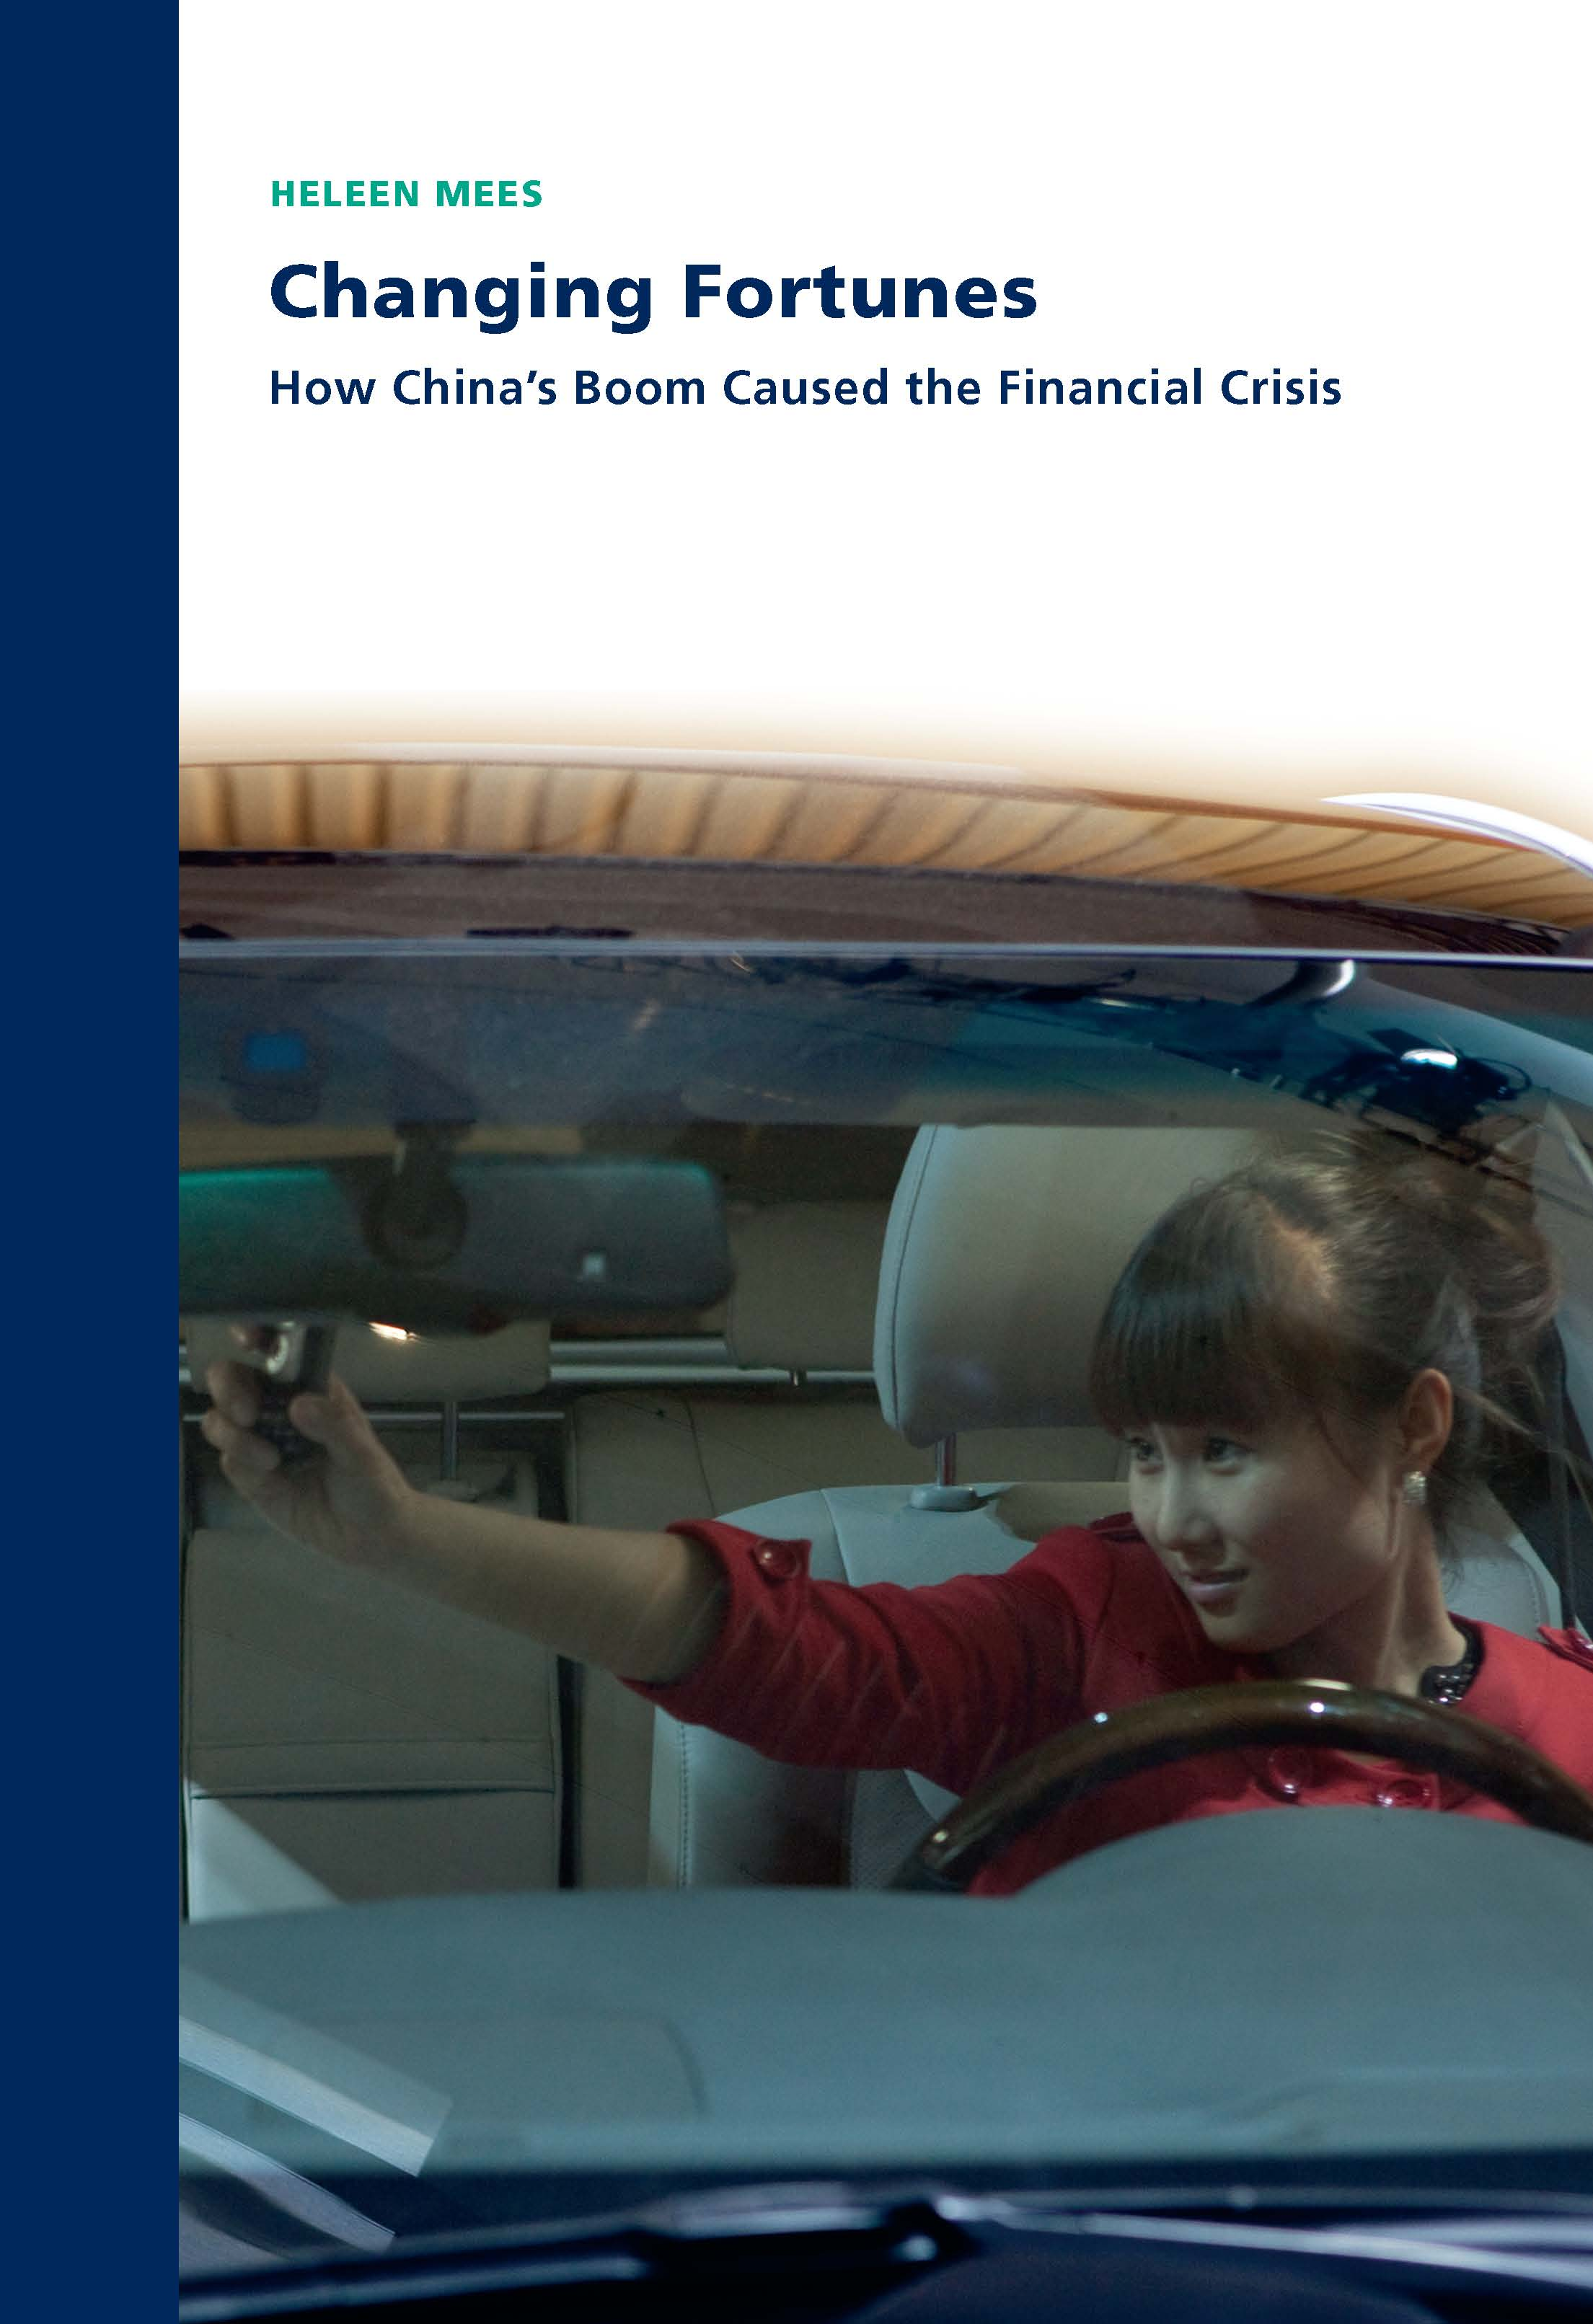 Changing Fortunes – How China's Boom Caused the Financial Crisis